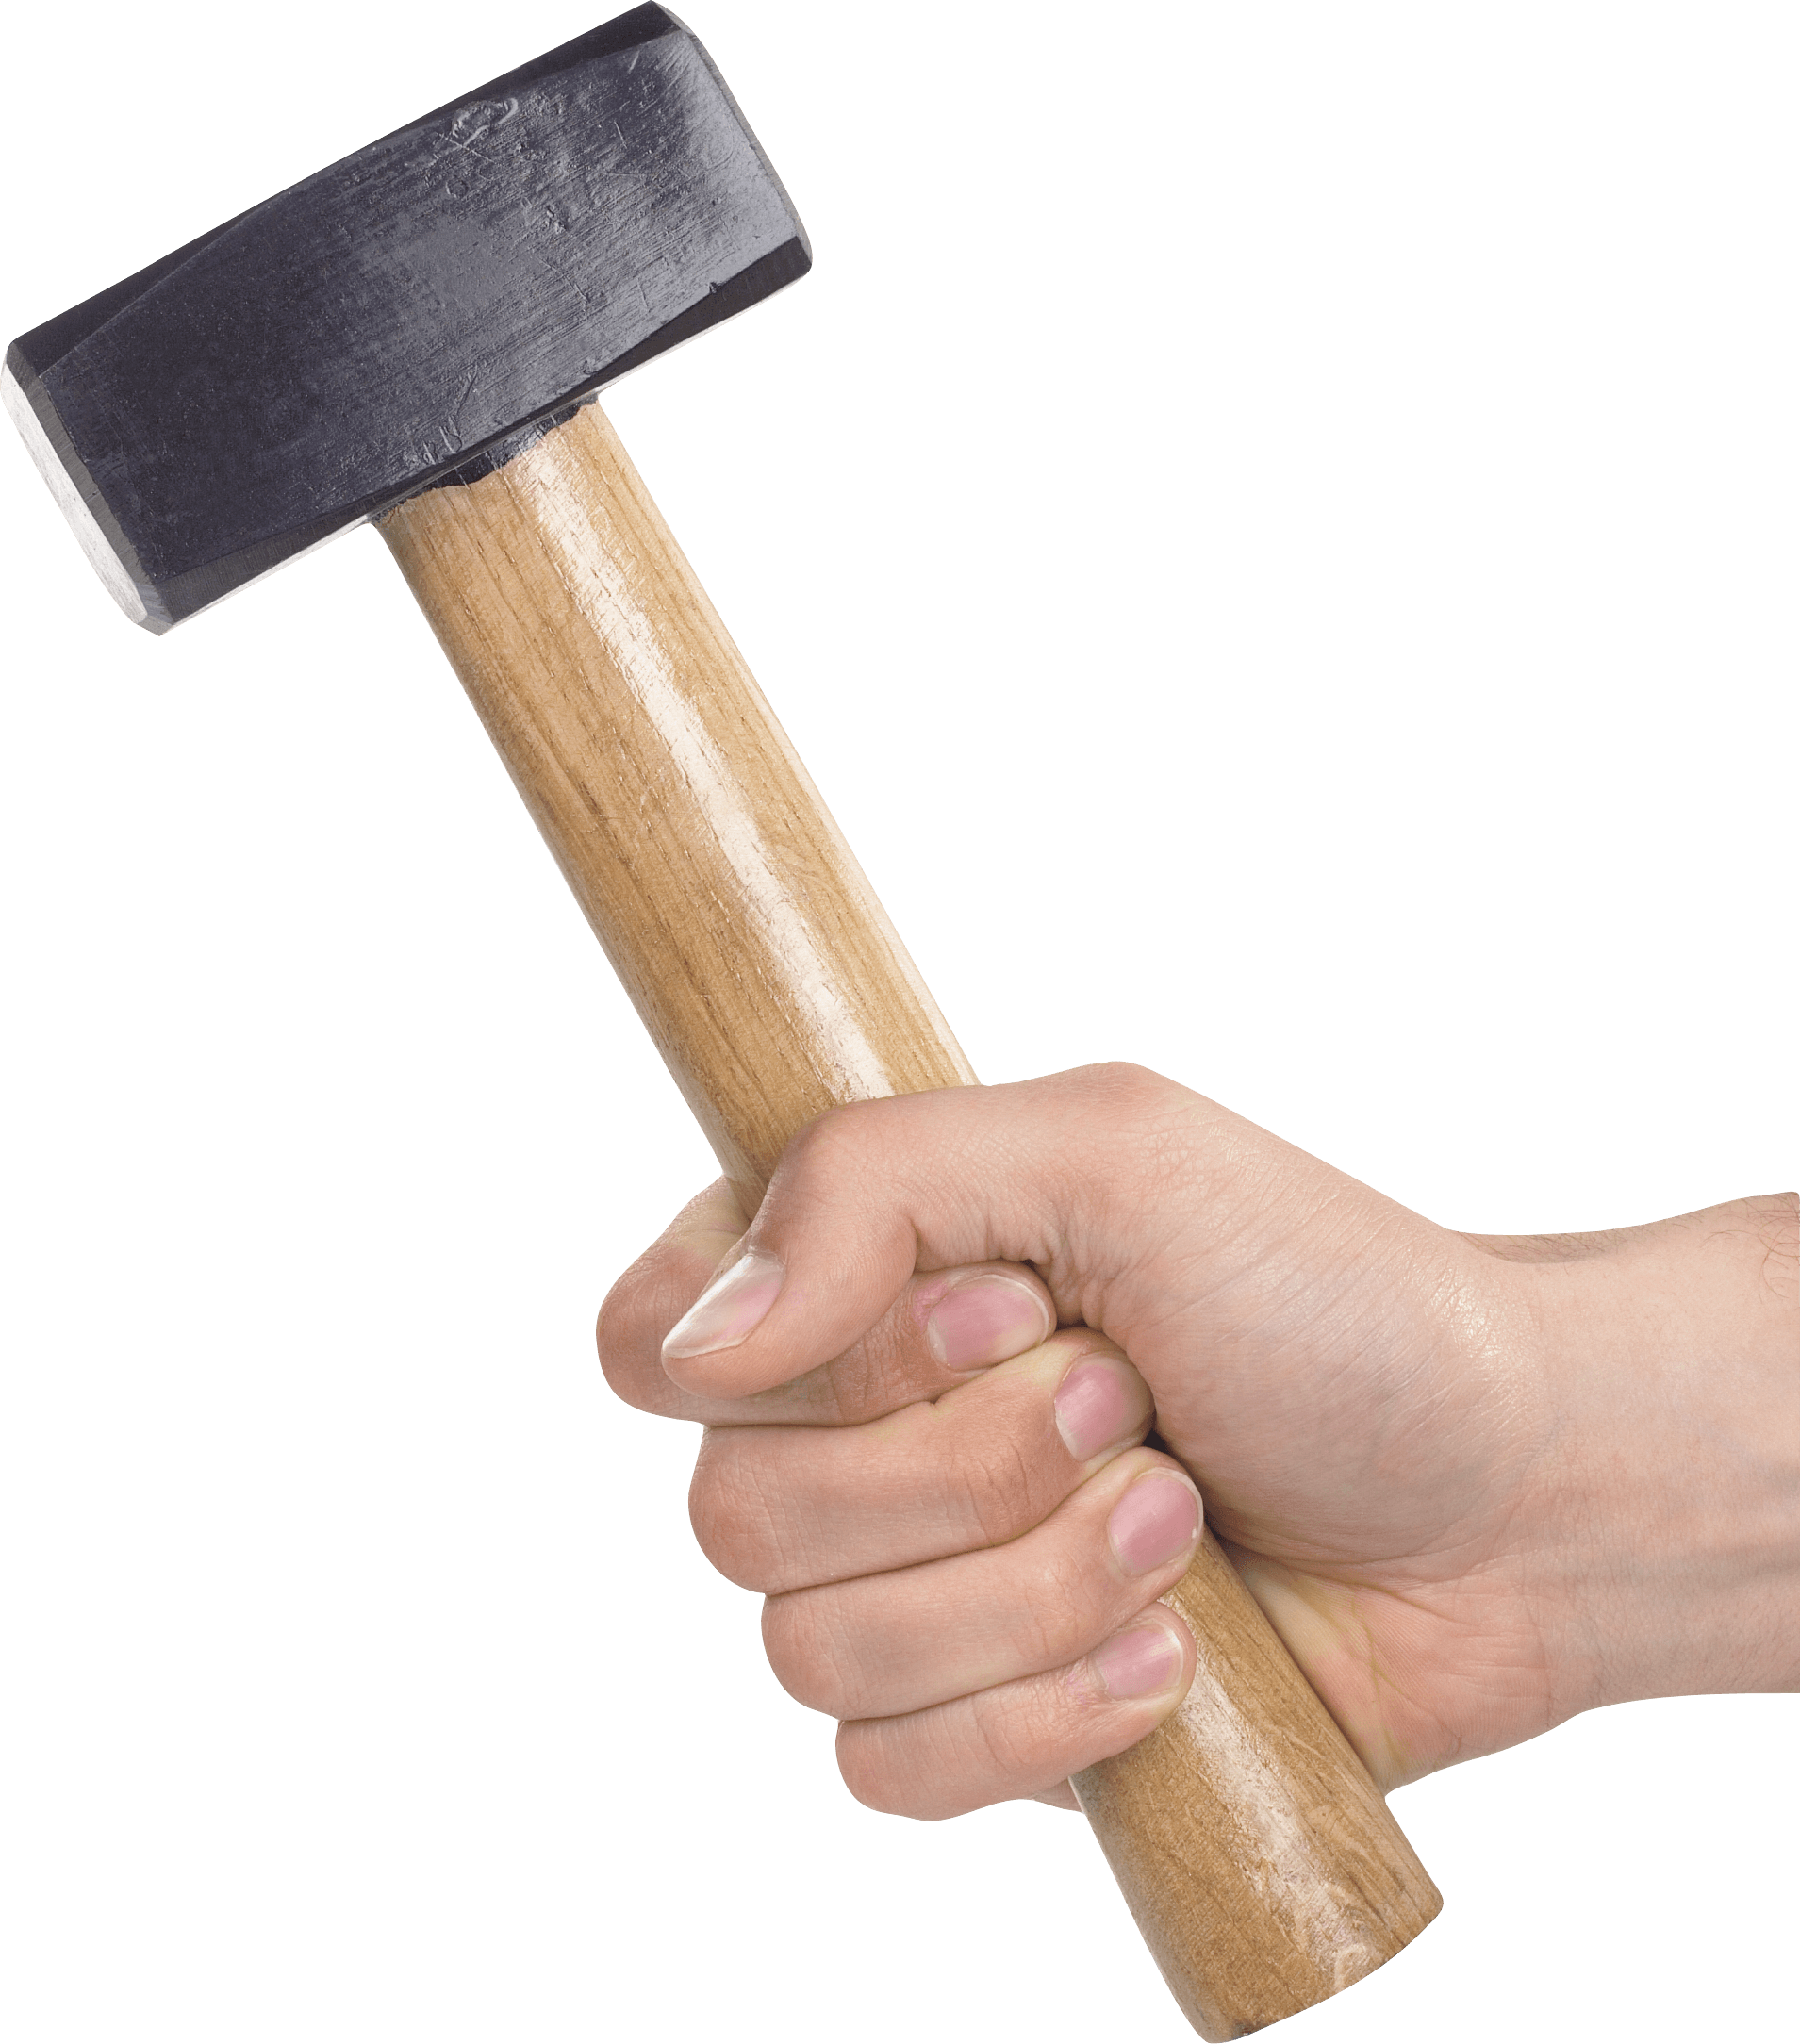 Hammer PNG - 9715